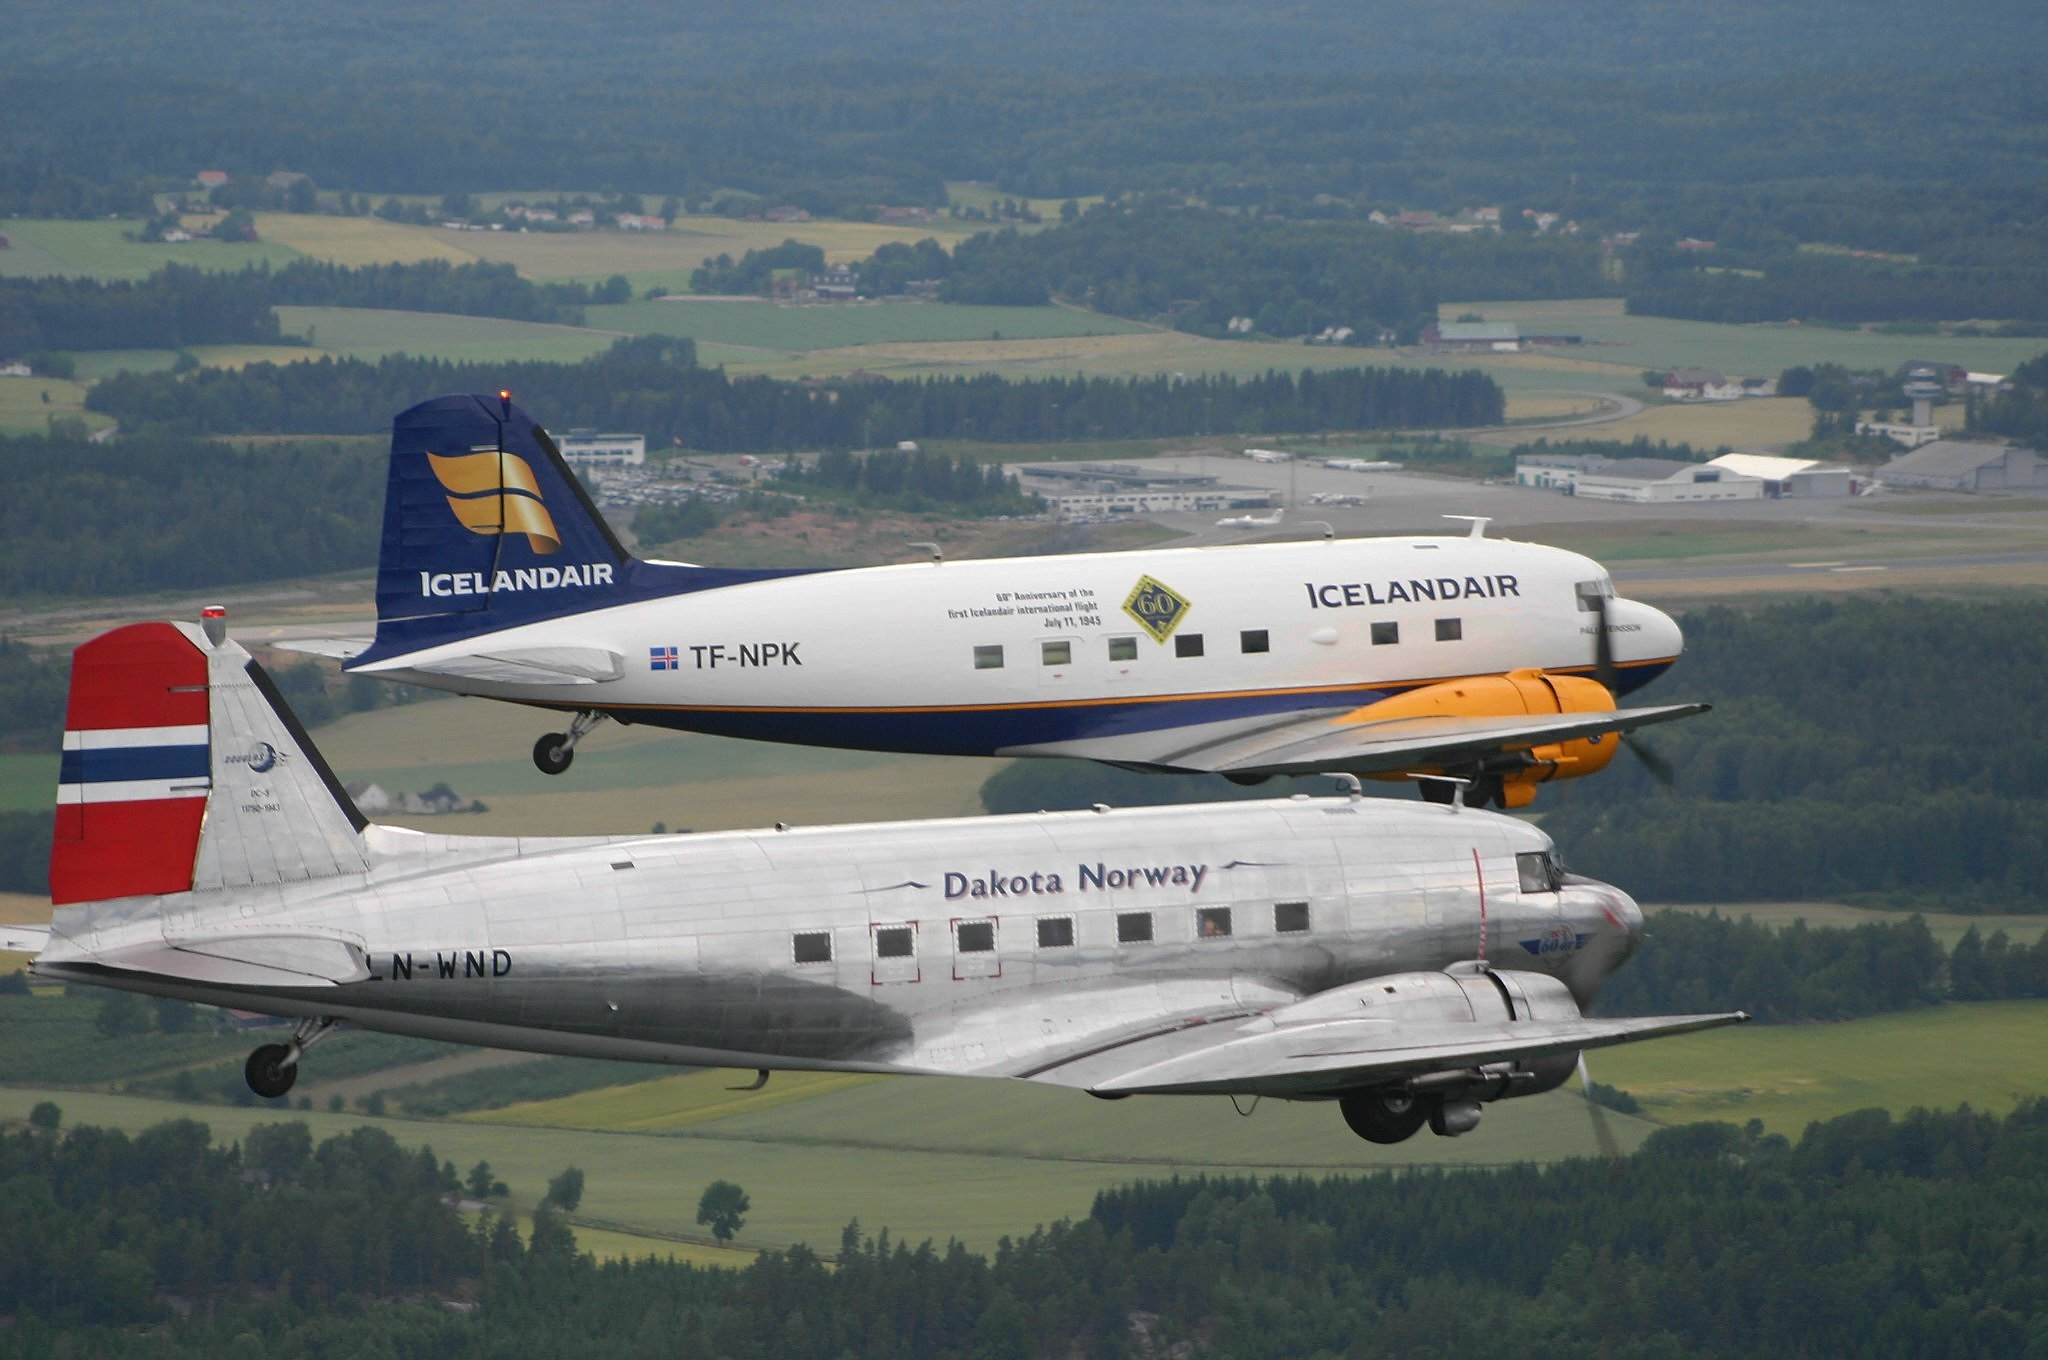 Icelandic DC-3 TF-NPK and Norwegian LN-WND during formation flight over Sandefjörd, Norway // Source: Tómas Dagur Helgason